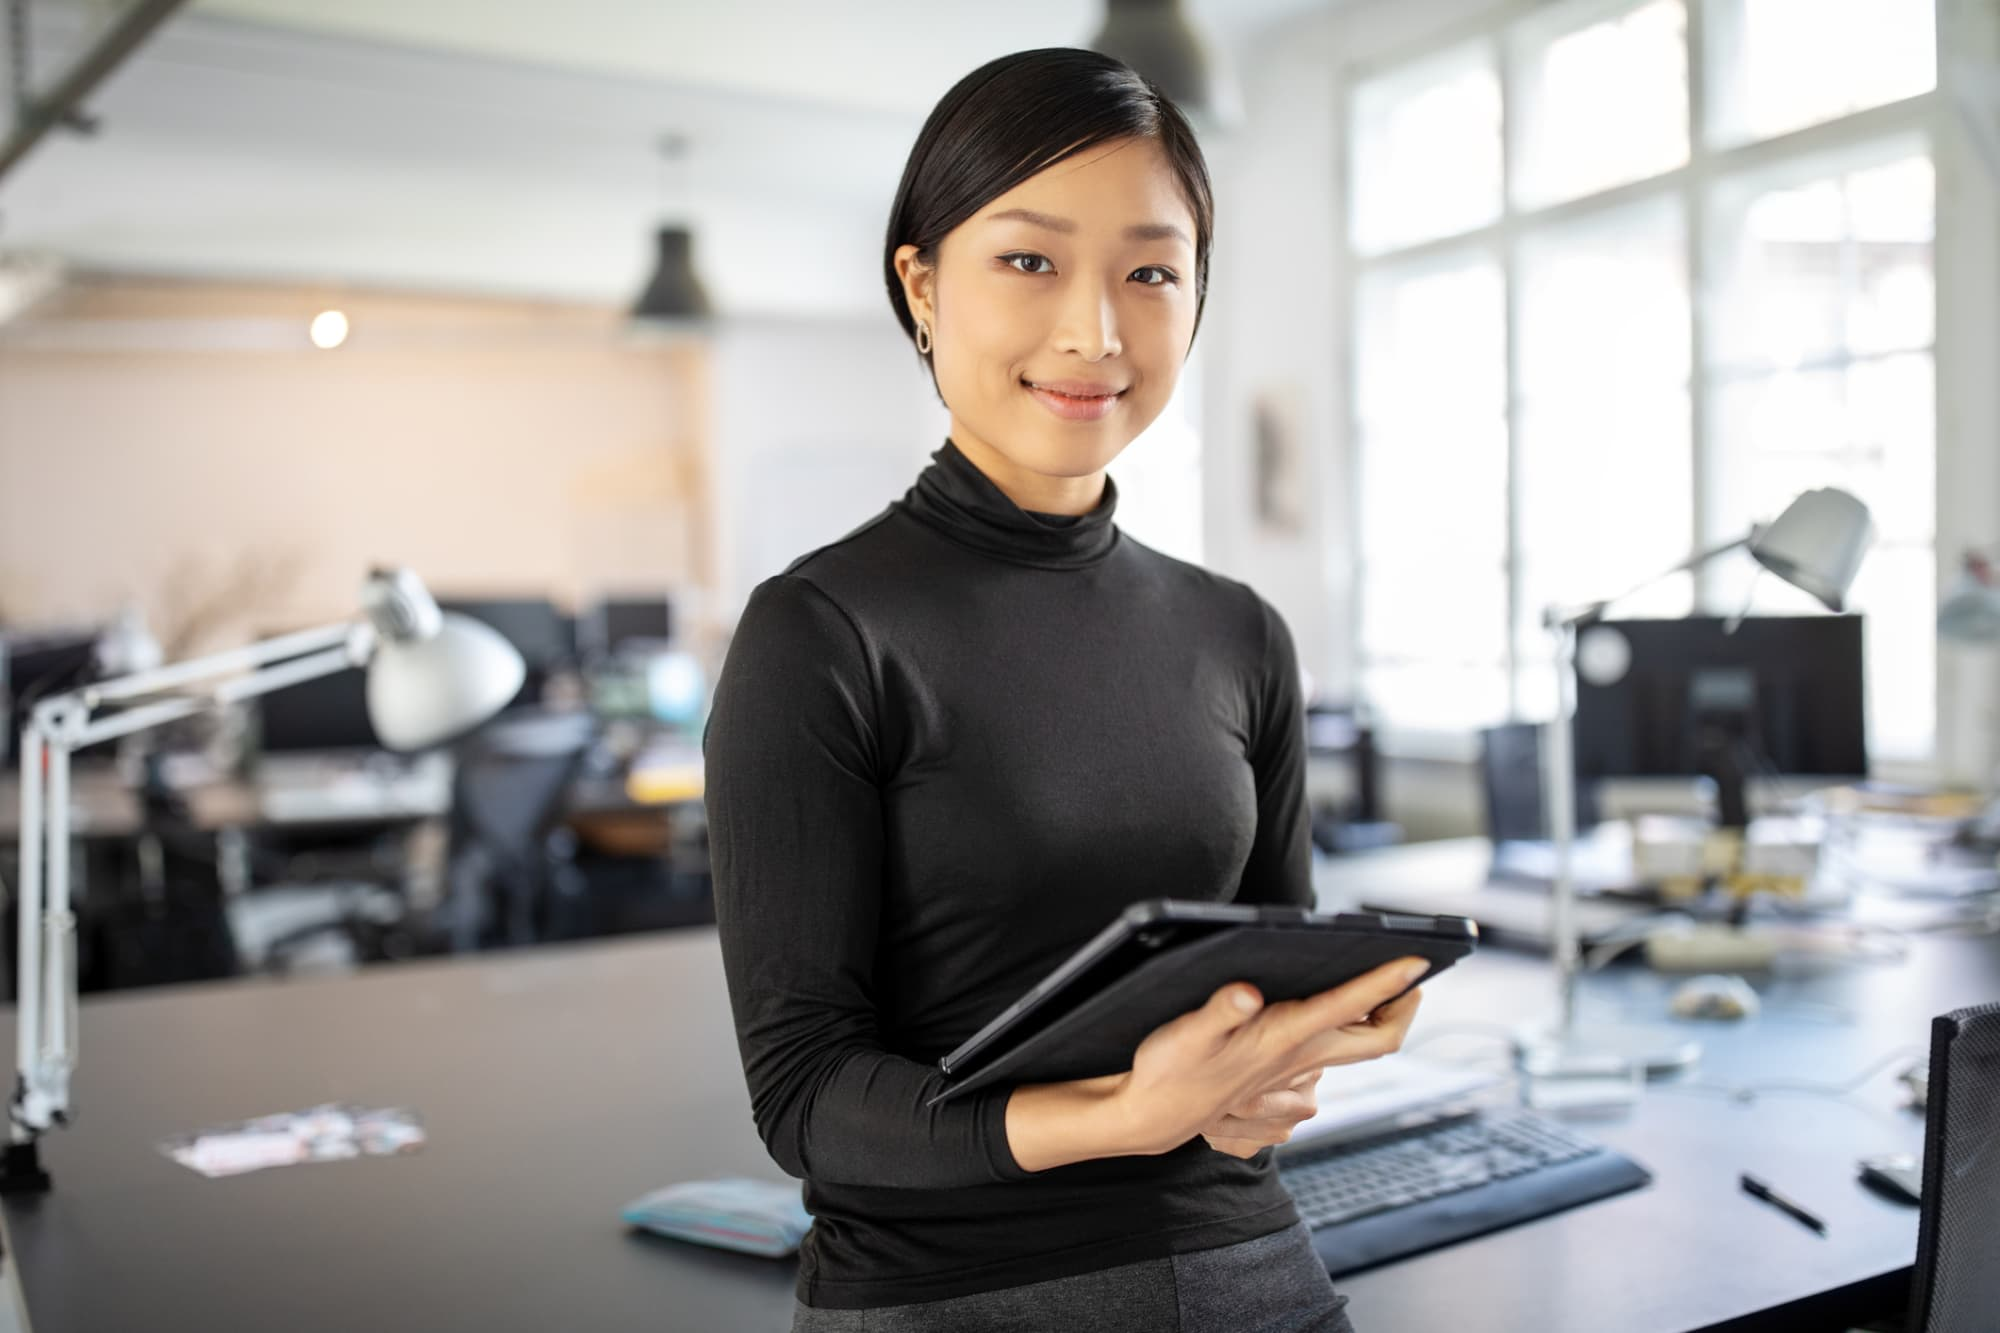 Hero Image The 25 Best Online Bachelor's Degrees in Business Administration of 2021